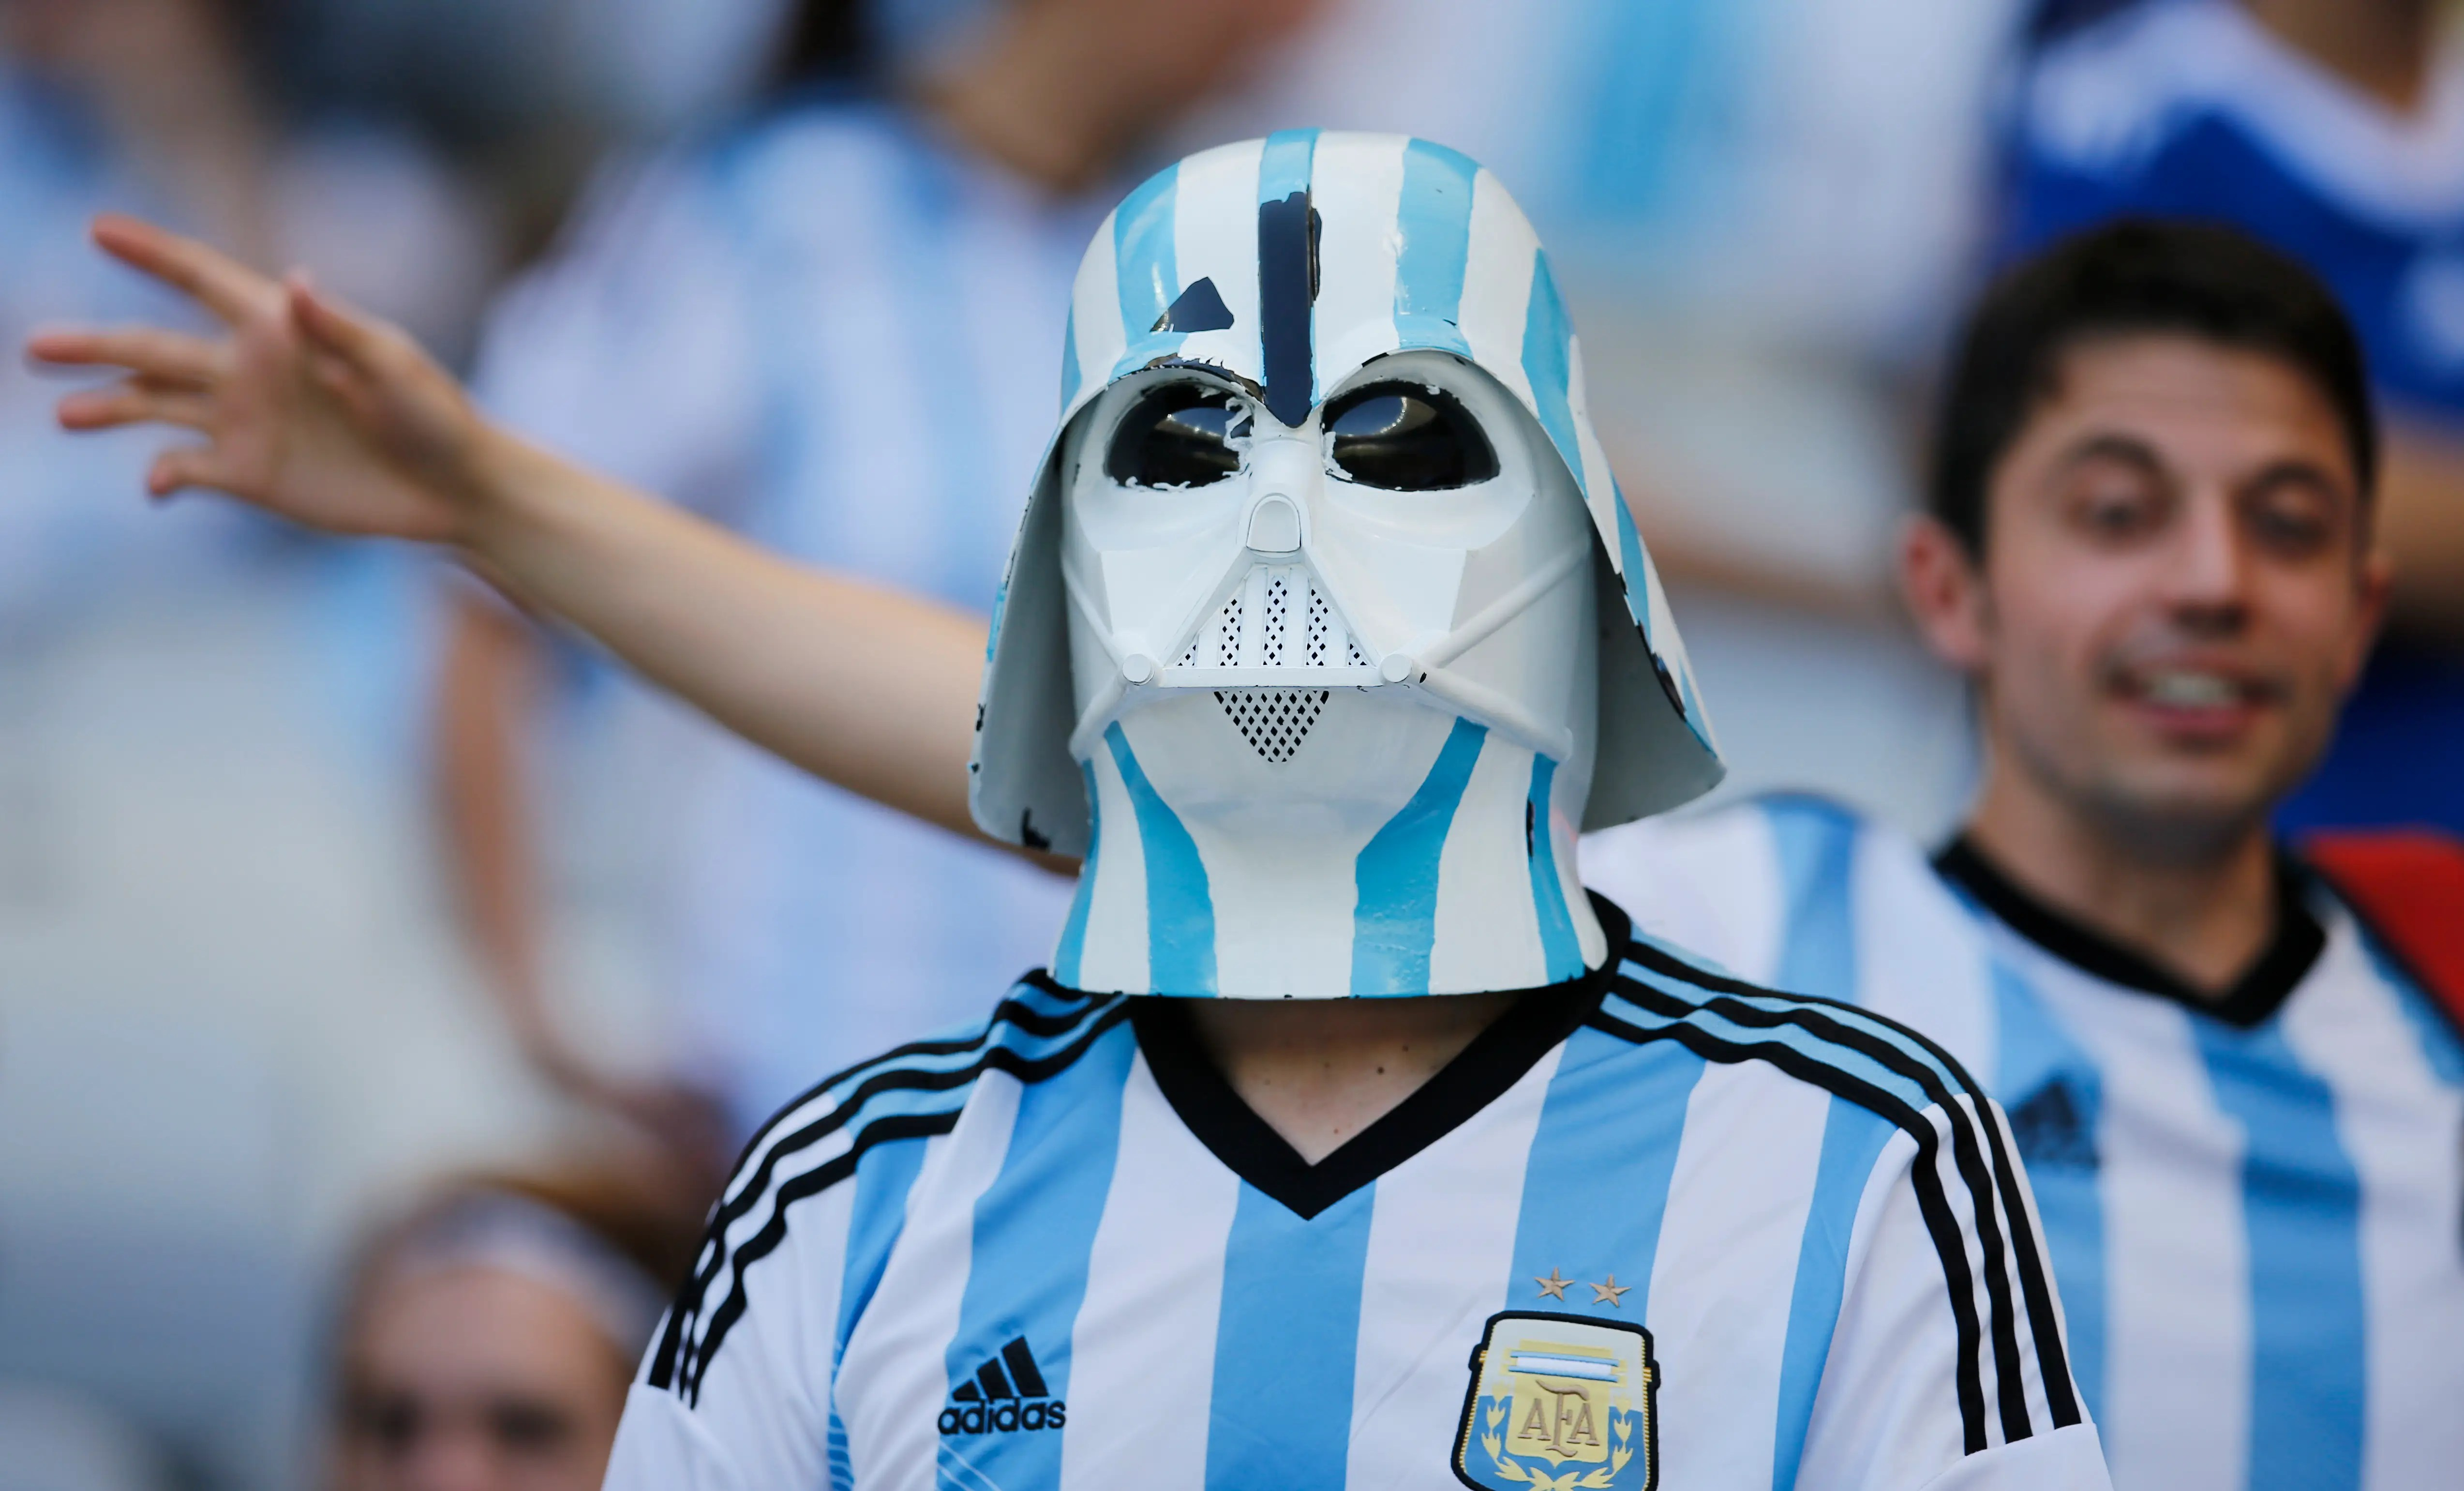 https://i2.wp.com/static4.businessinsider.com/image/53adc6f16bb3f7f47e3347bf-1200/darth-vader-is-apparently-a-fan-of-the-argentina-national-team.jpg